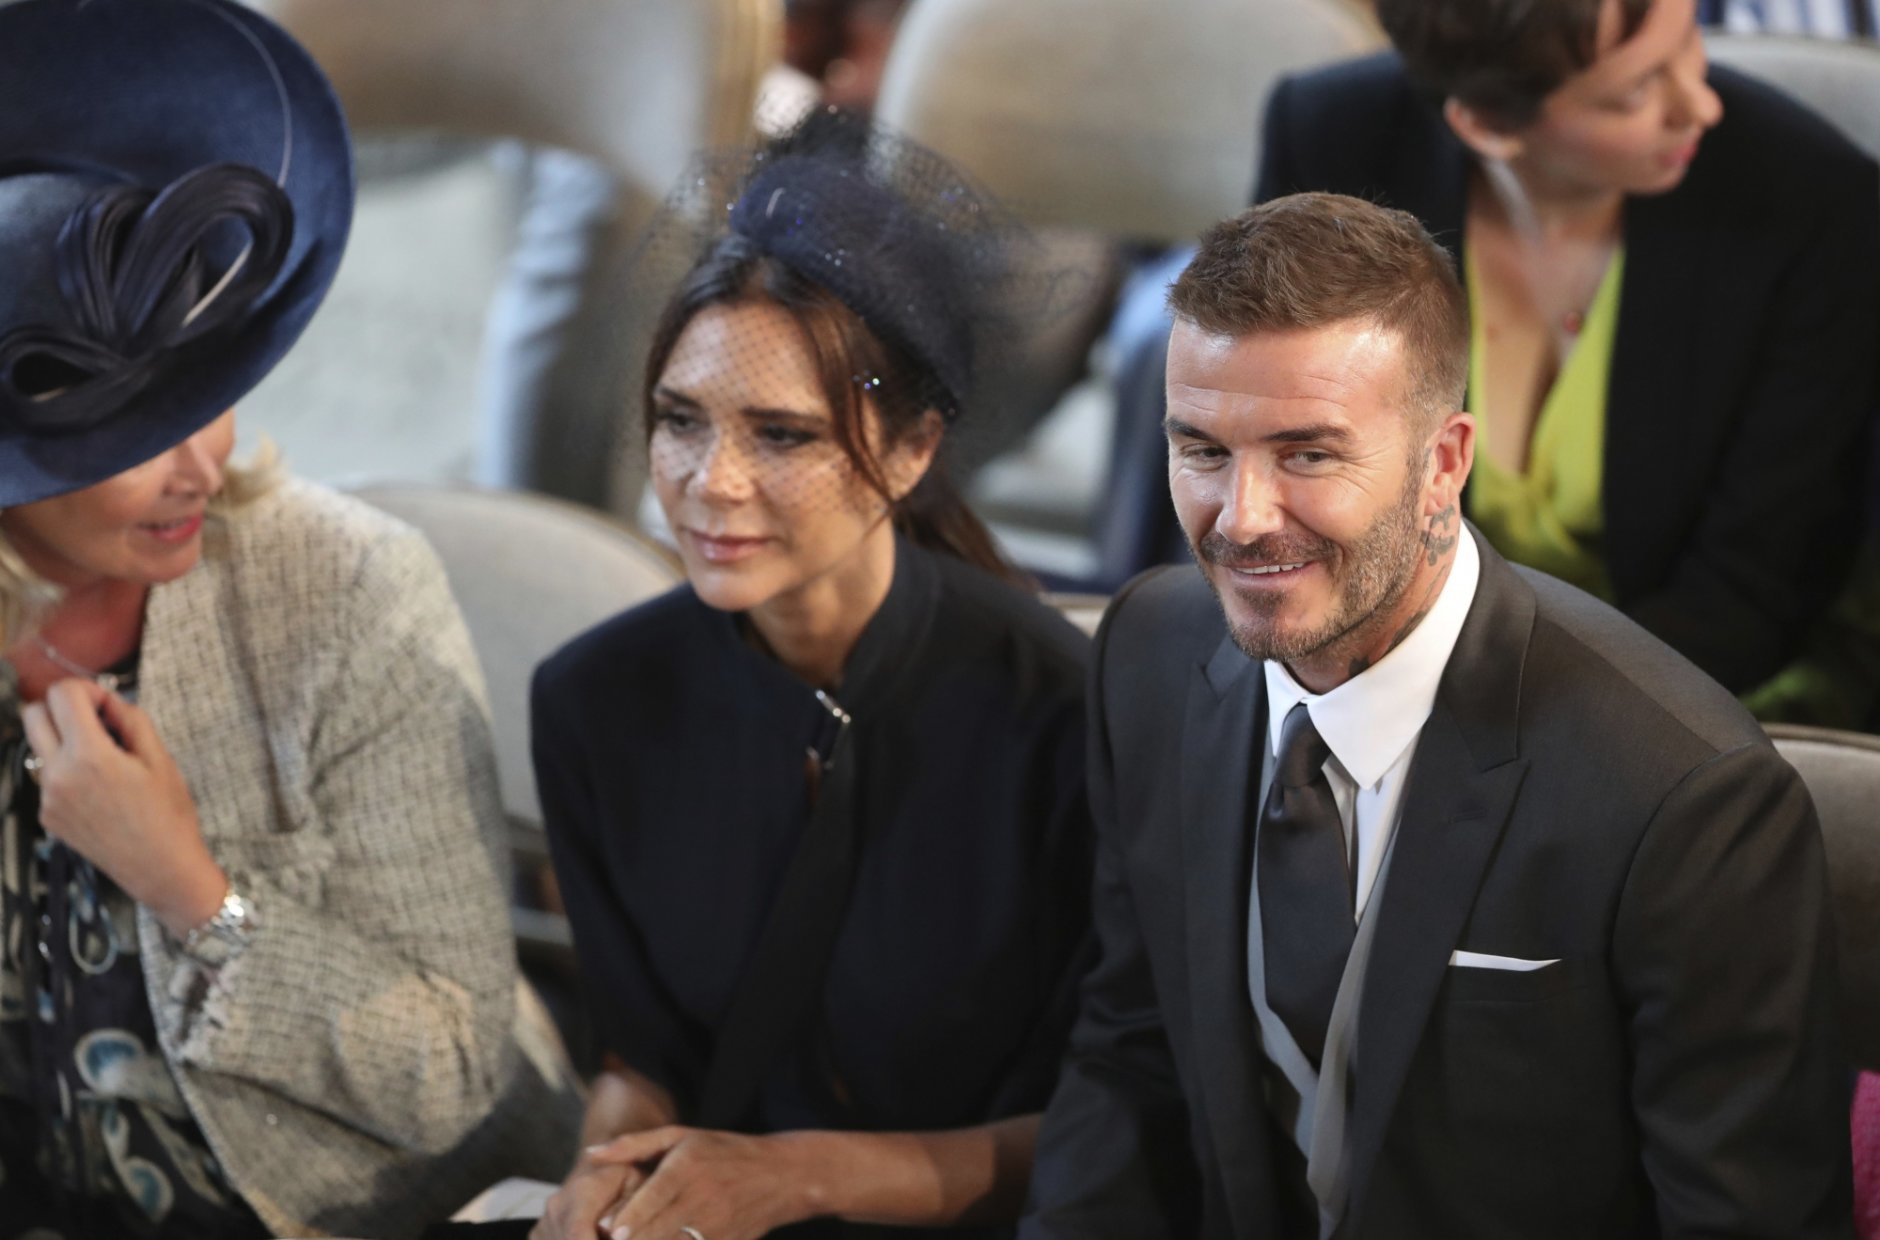 David and Victoria Beckham take their seats for the wedding of Prince Harry and Meghan Markle St. George's Chapel in Windsor Castle in Windsor, near London, England, Saturday, May 19, 2018. (Danny Lawson/pool photo via AP)